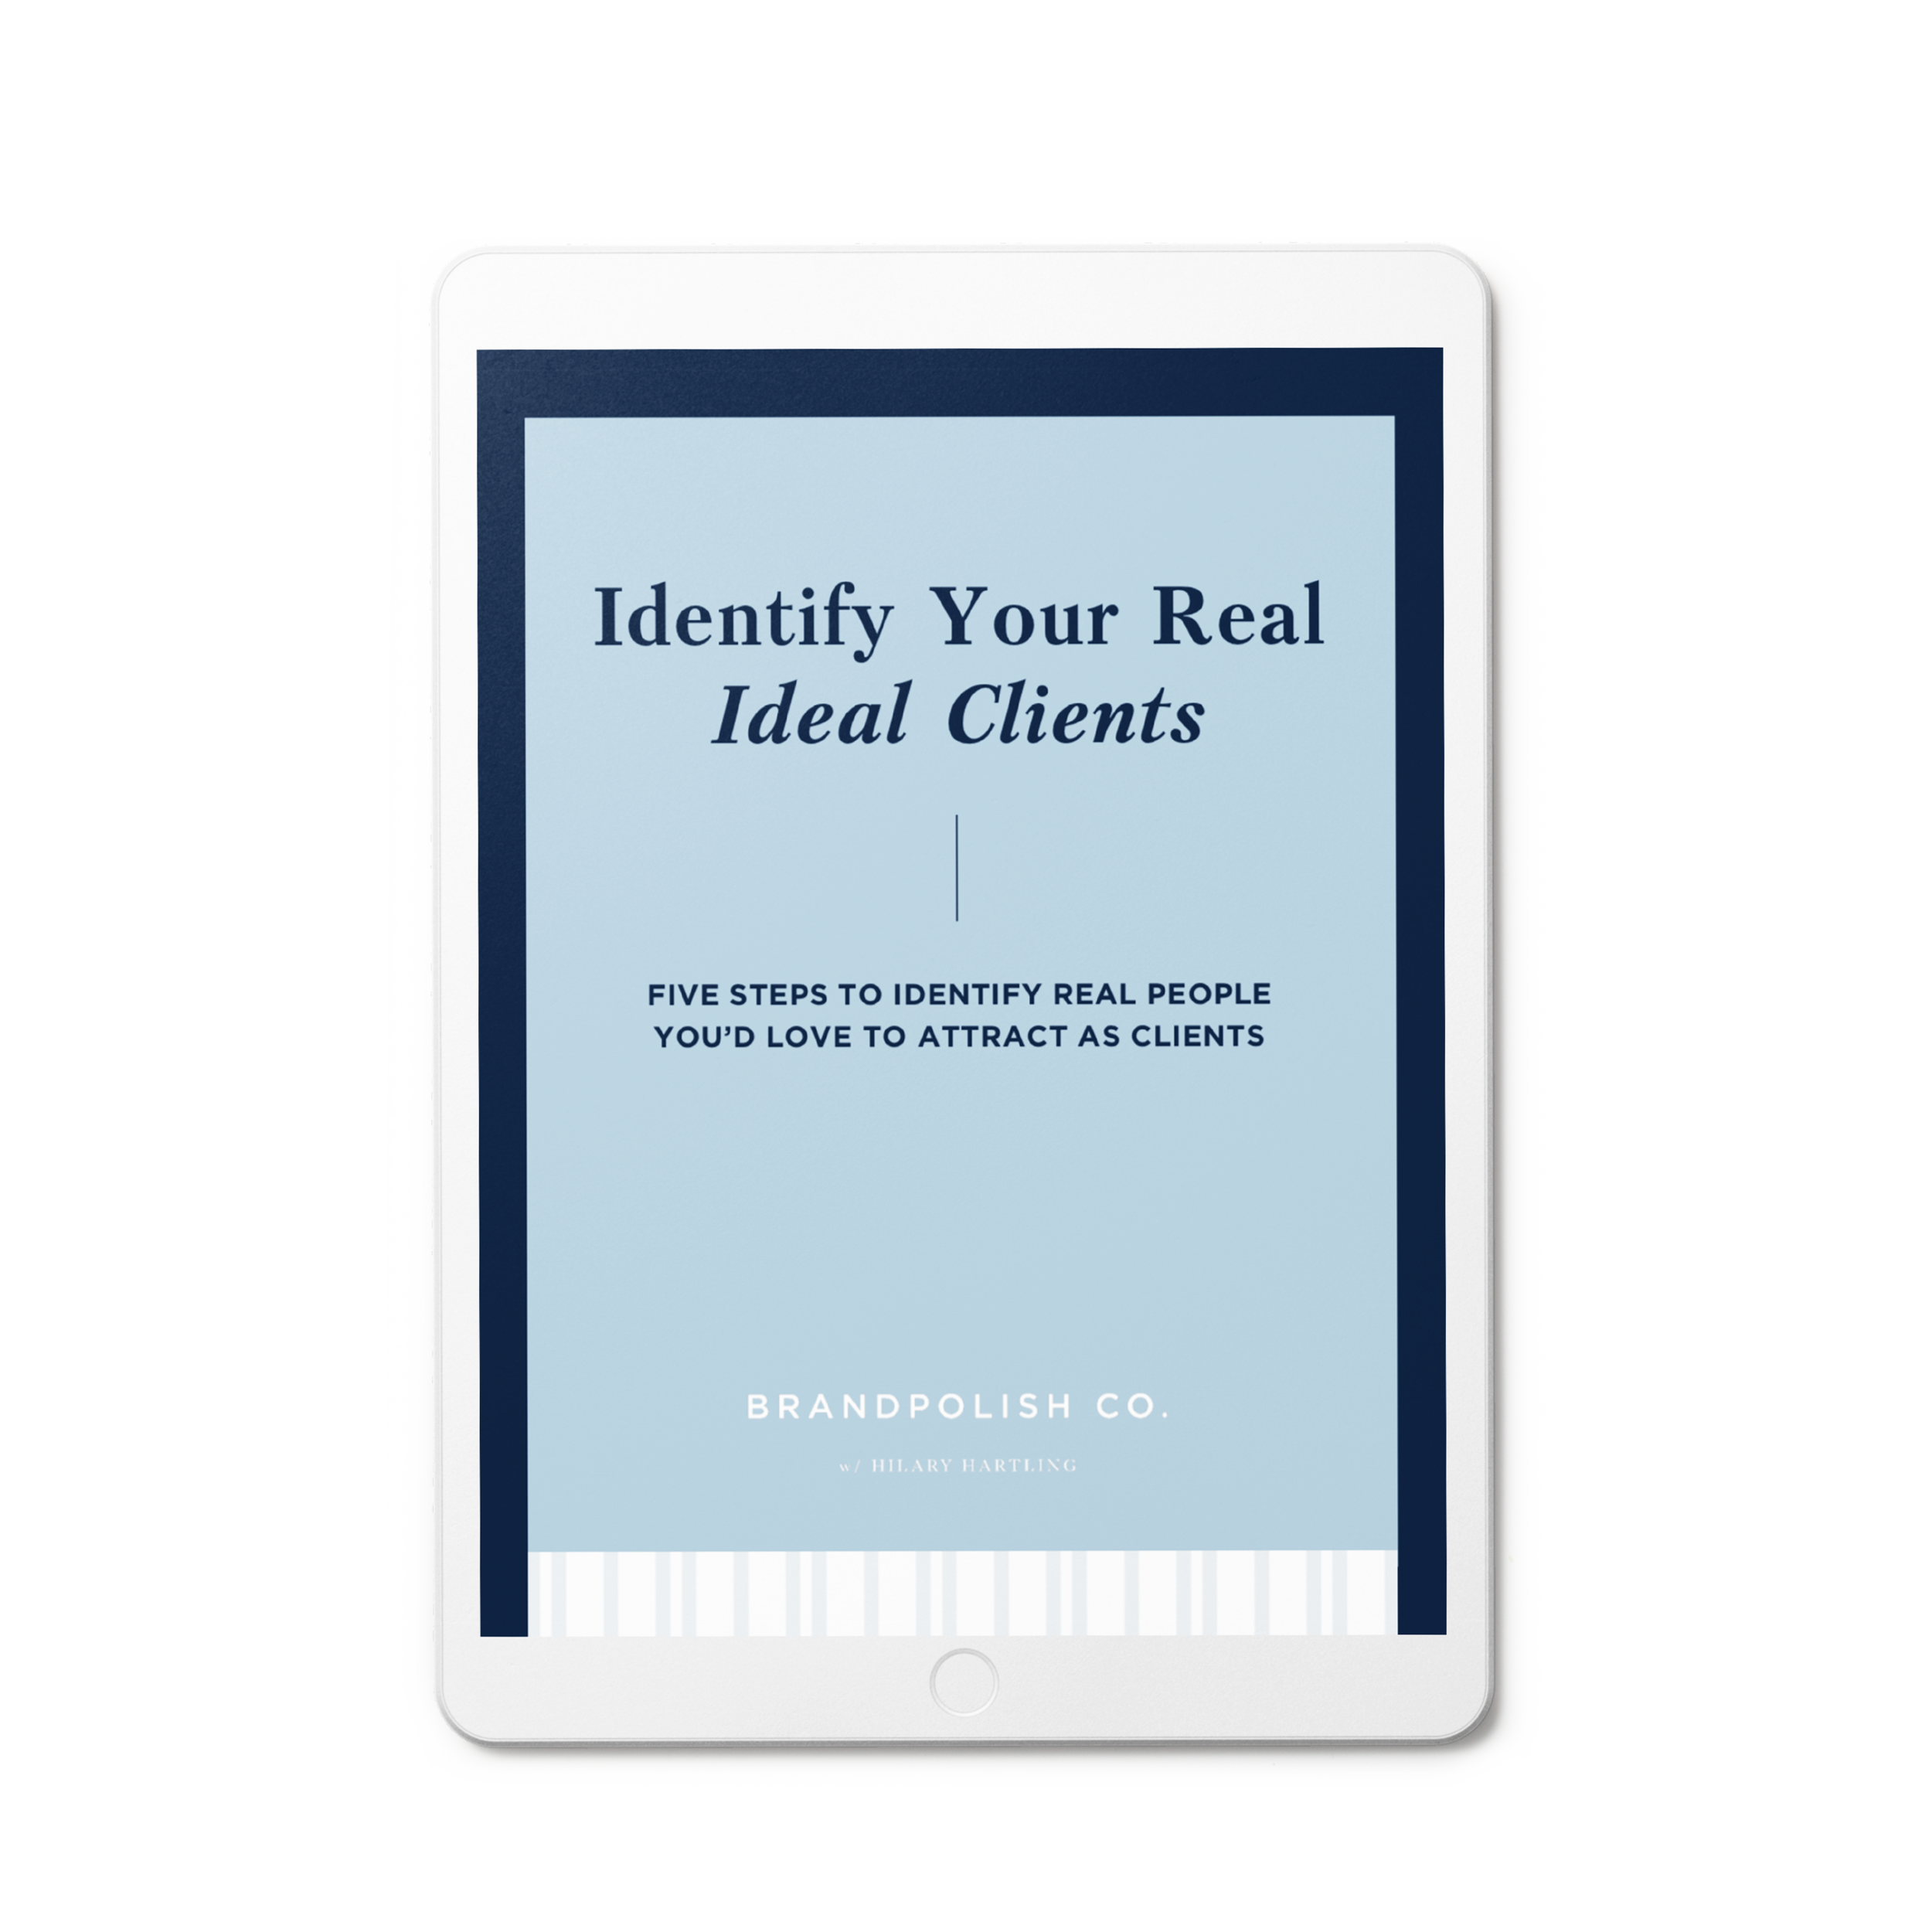 Identify-Your-Real-Ideal-Client.png